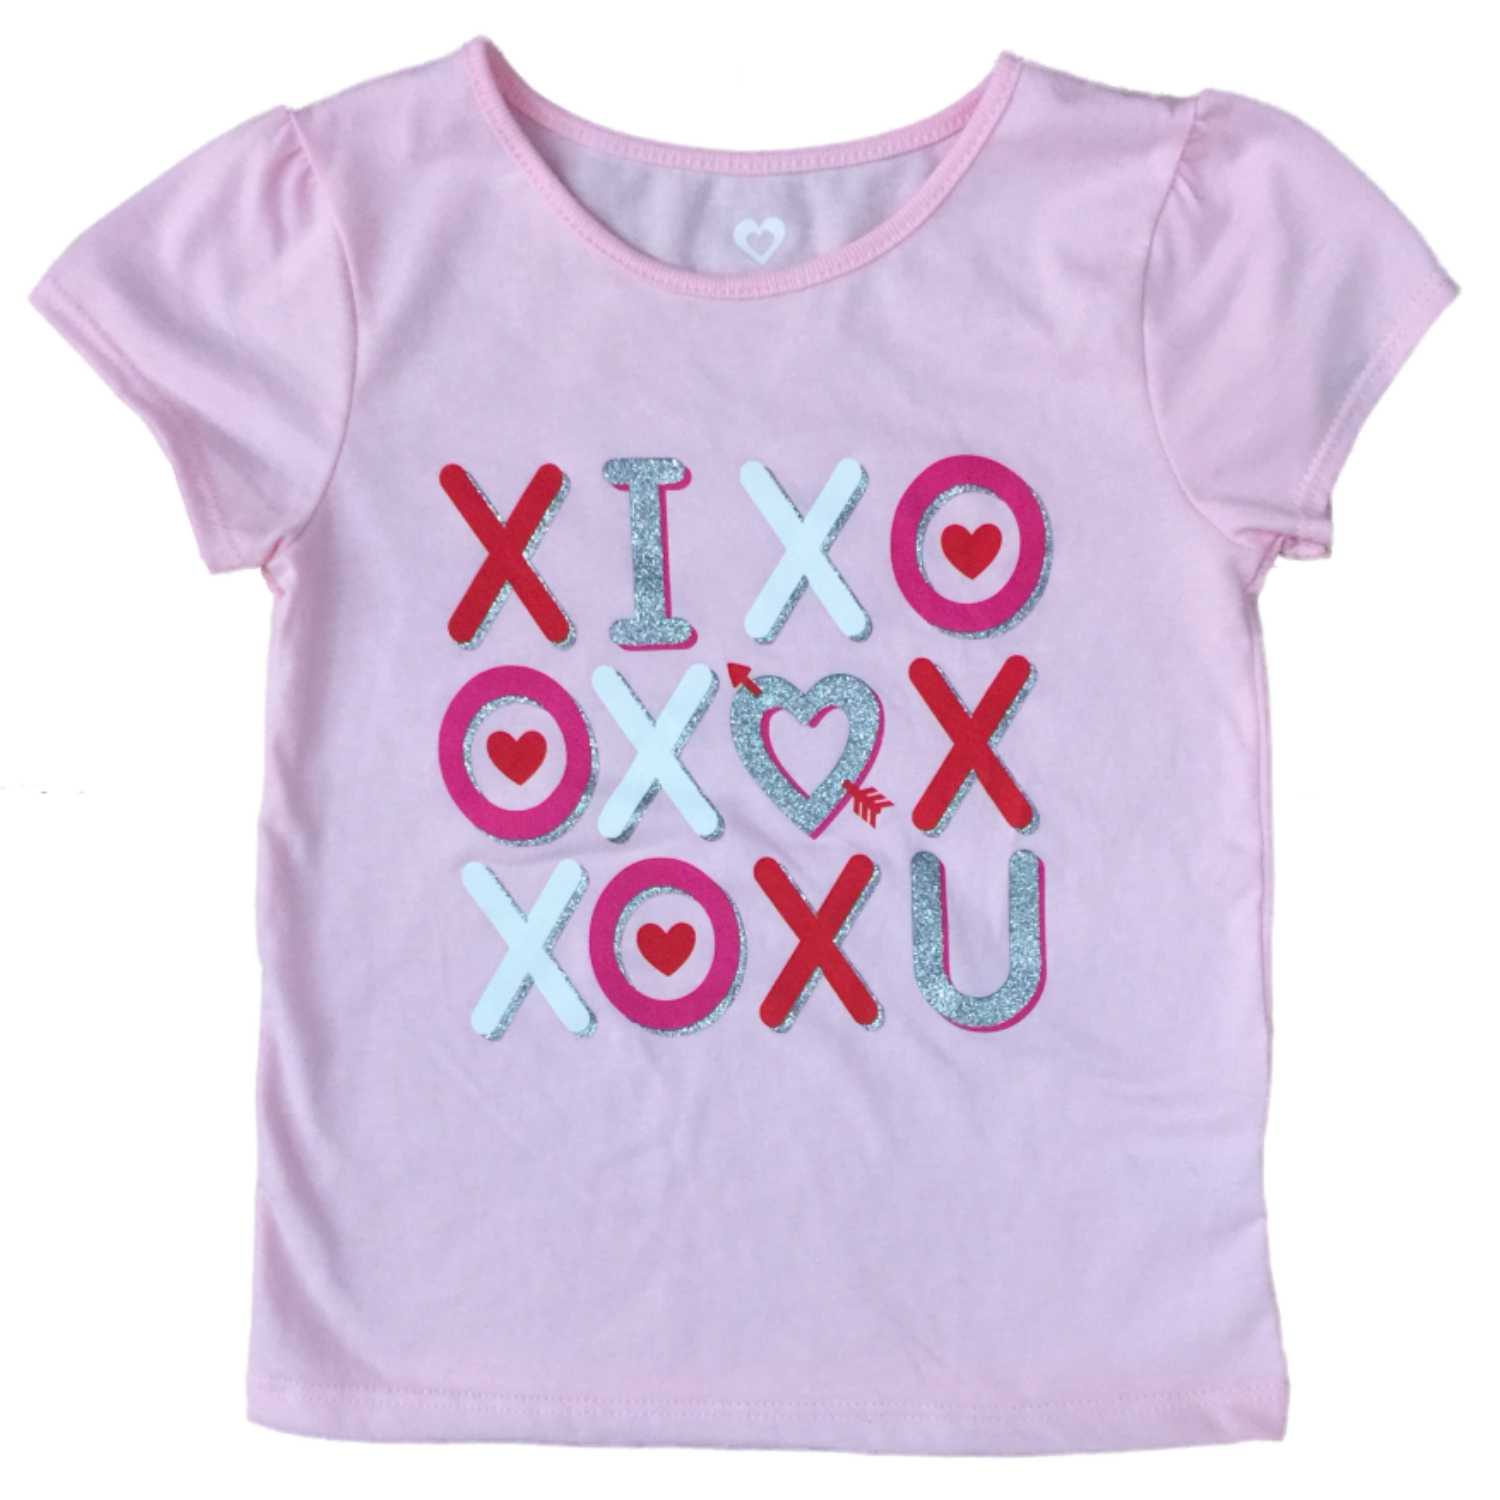 Infant & Toddler Girls Pink I Love You Valentines Day Heart T-Shirt XOXO